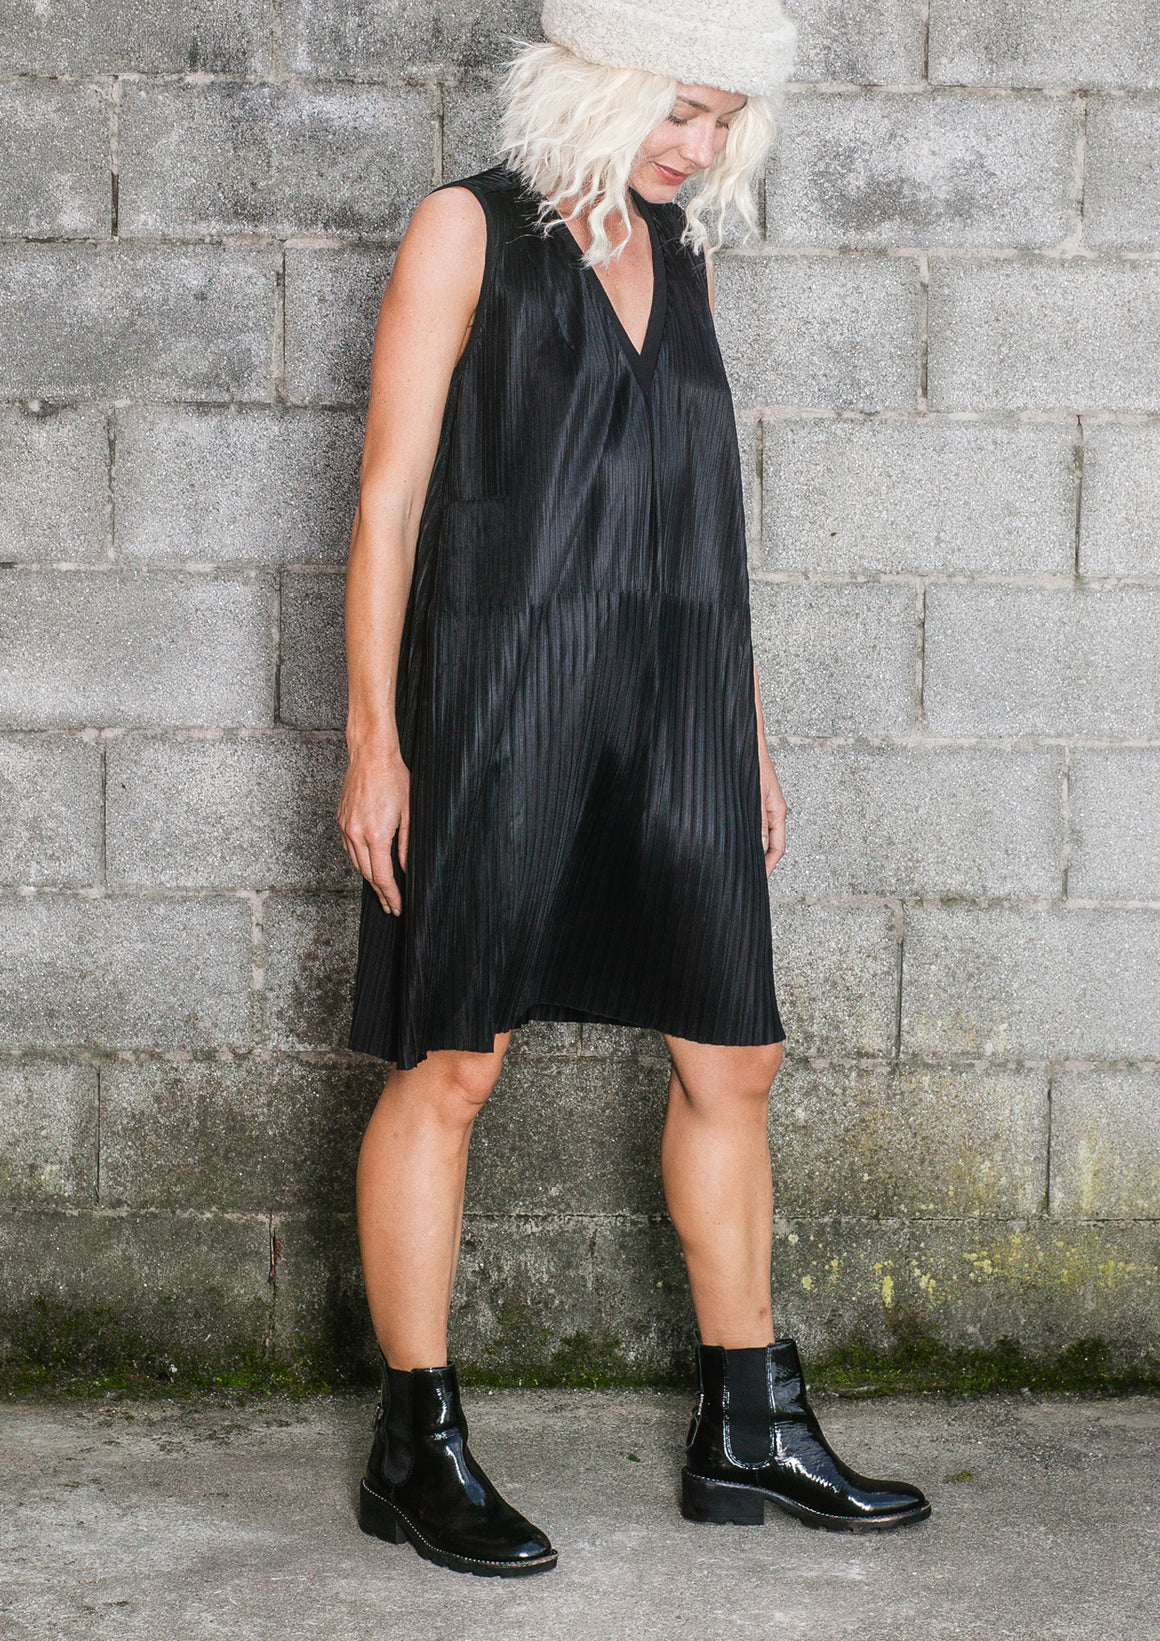 DRESS V-COLLAR SLEEVELESS - black pleated